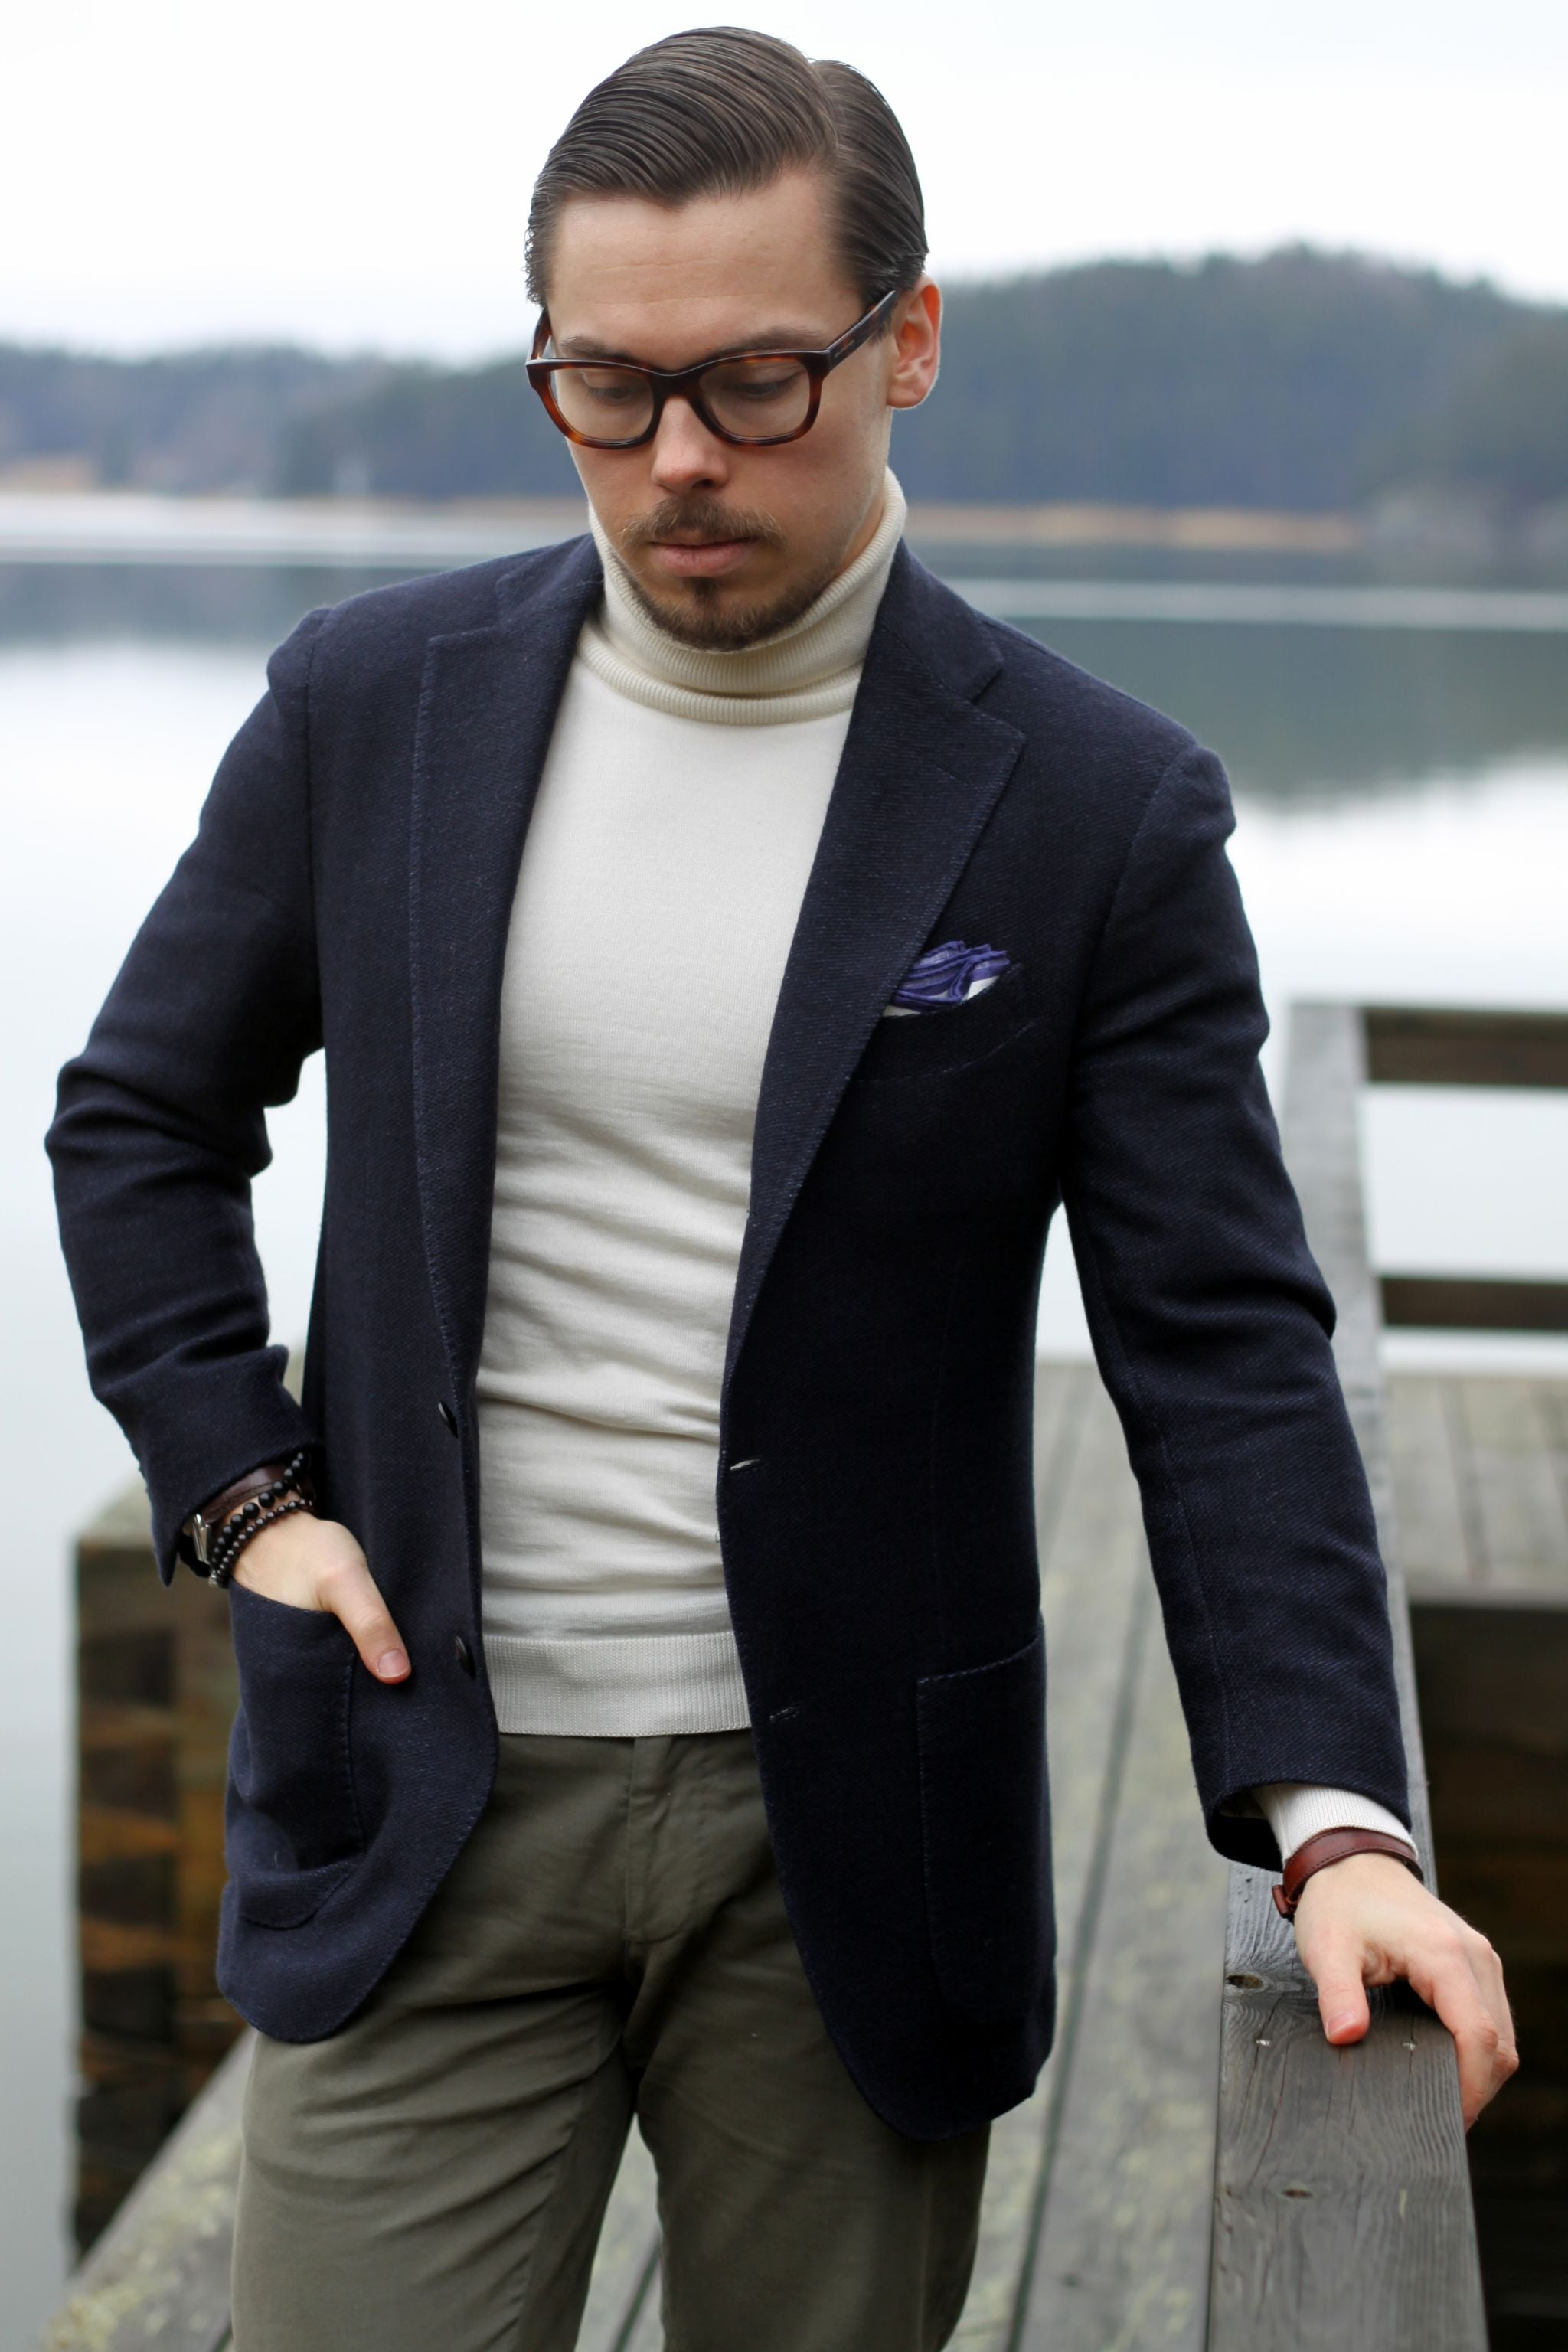 How to wear casual navy blazer